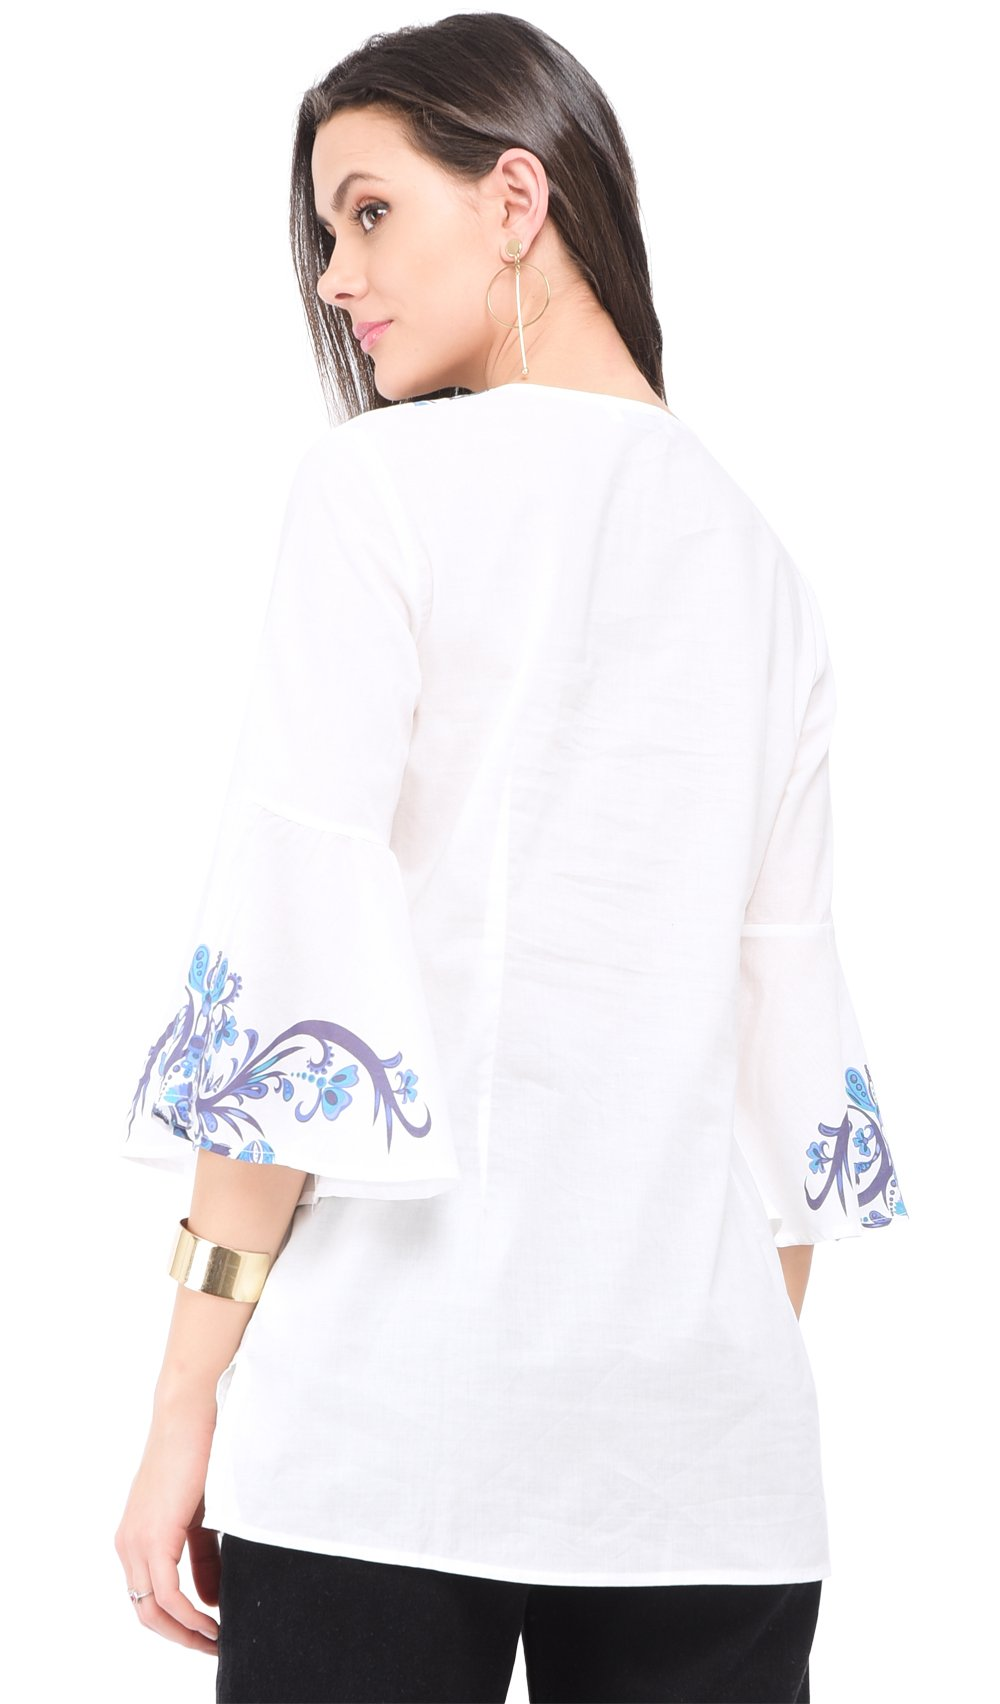 BI-COLORS PRINTED TOP WITH HALF RUFFLED SLEEVES